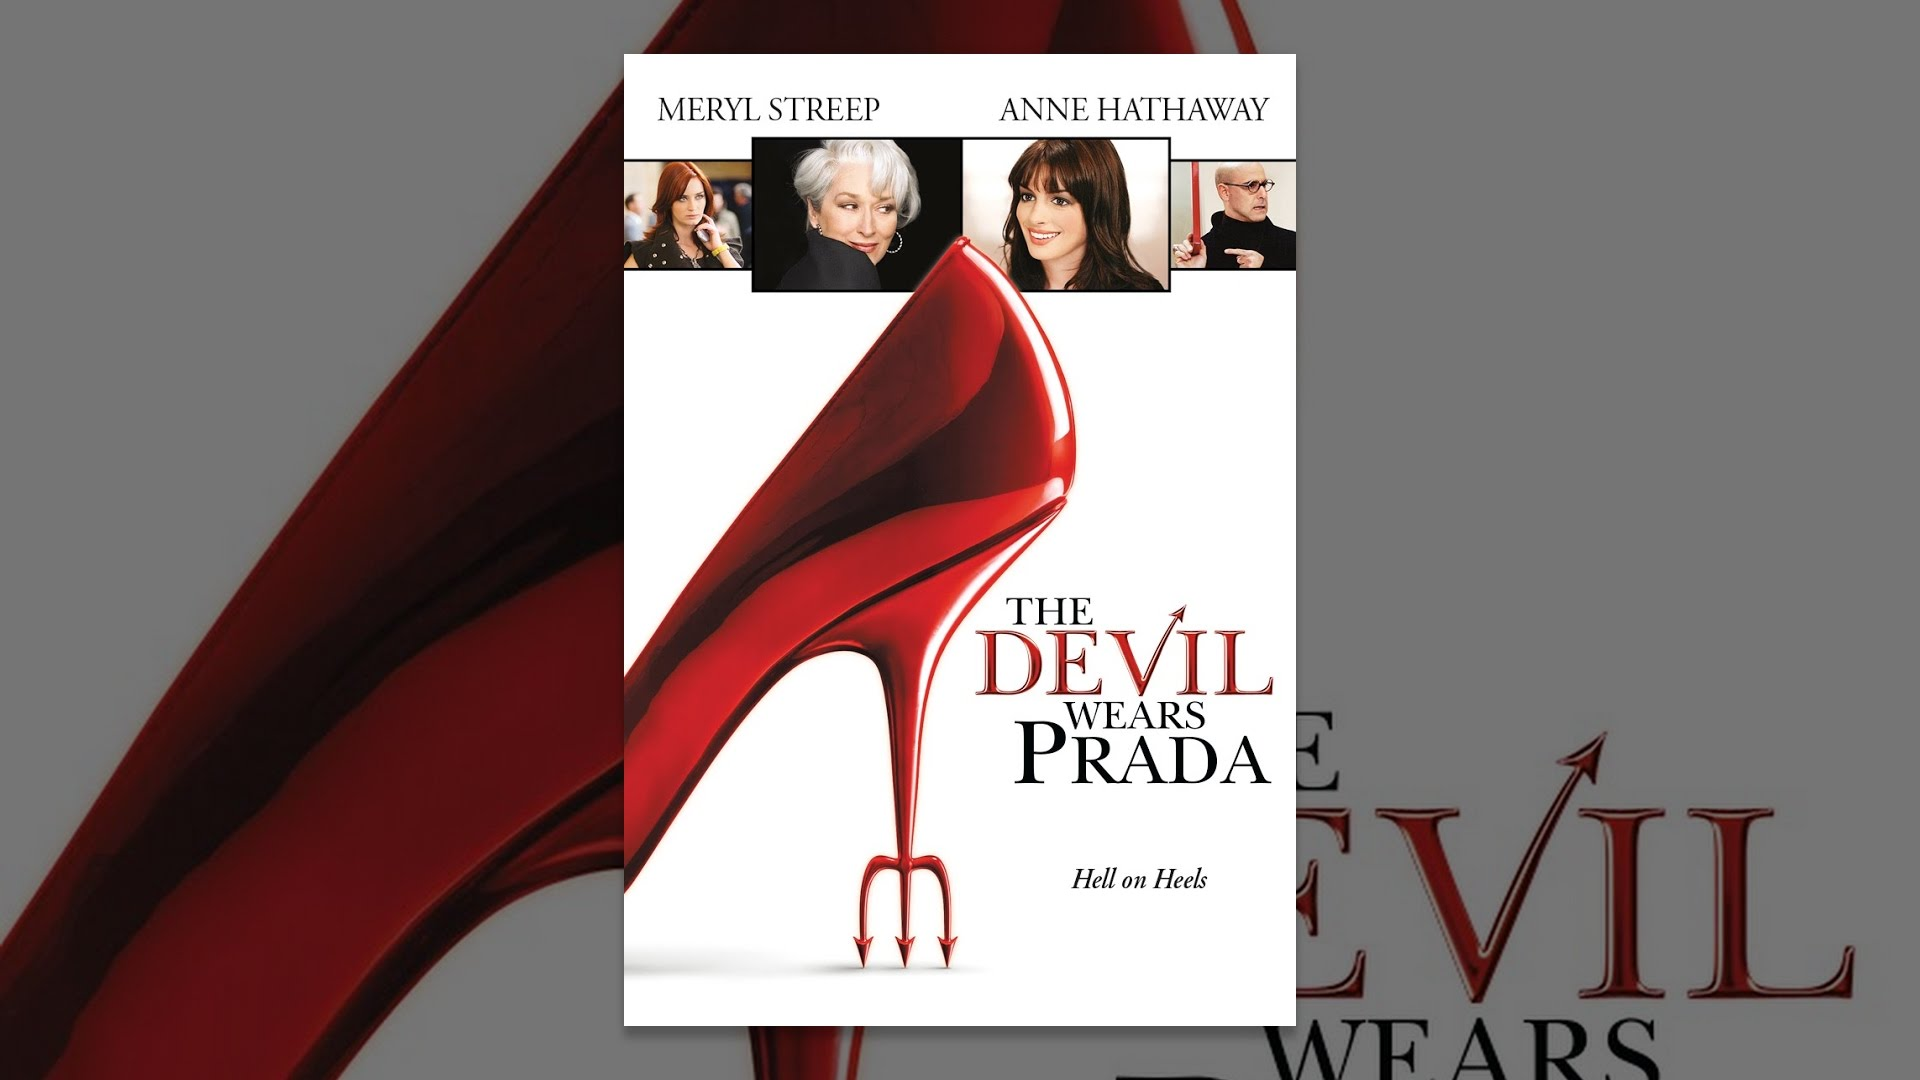 Devil wears prada movie script